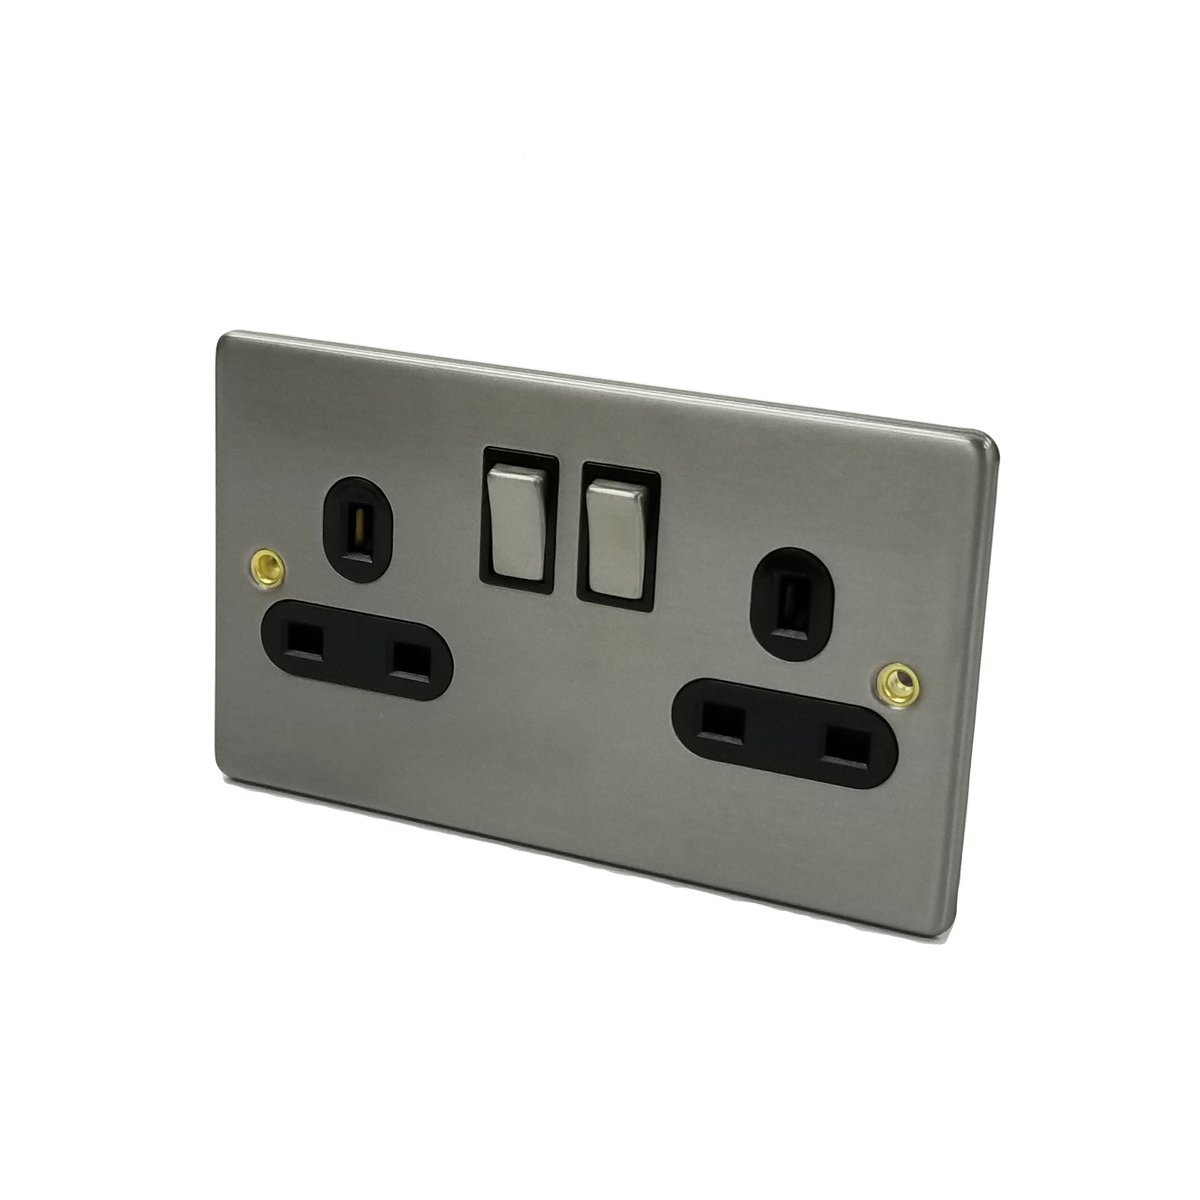 Metal Brushed Steel Plate - 2 Gang 13A DP Switched Socket